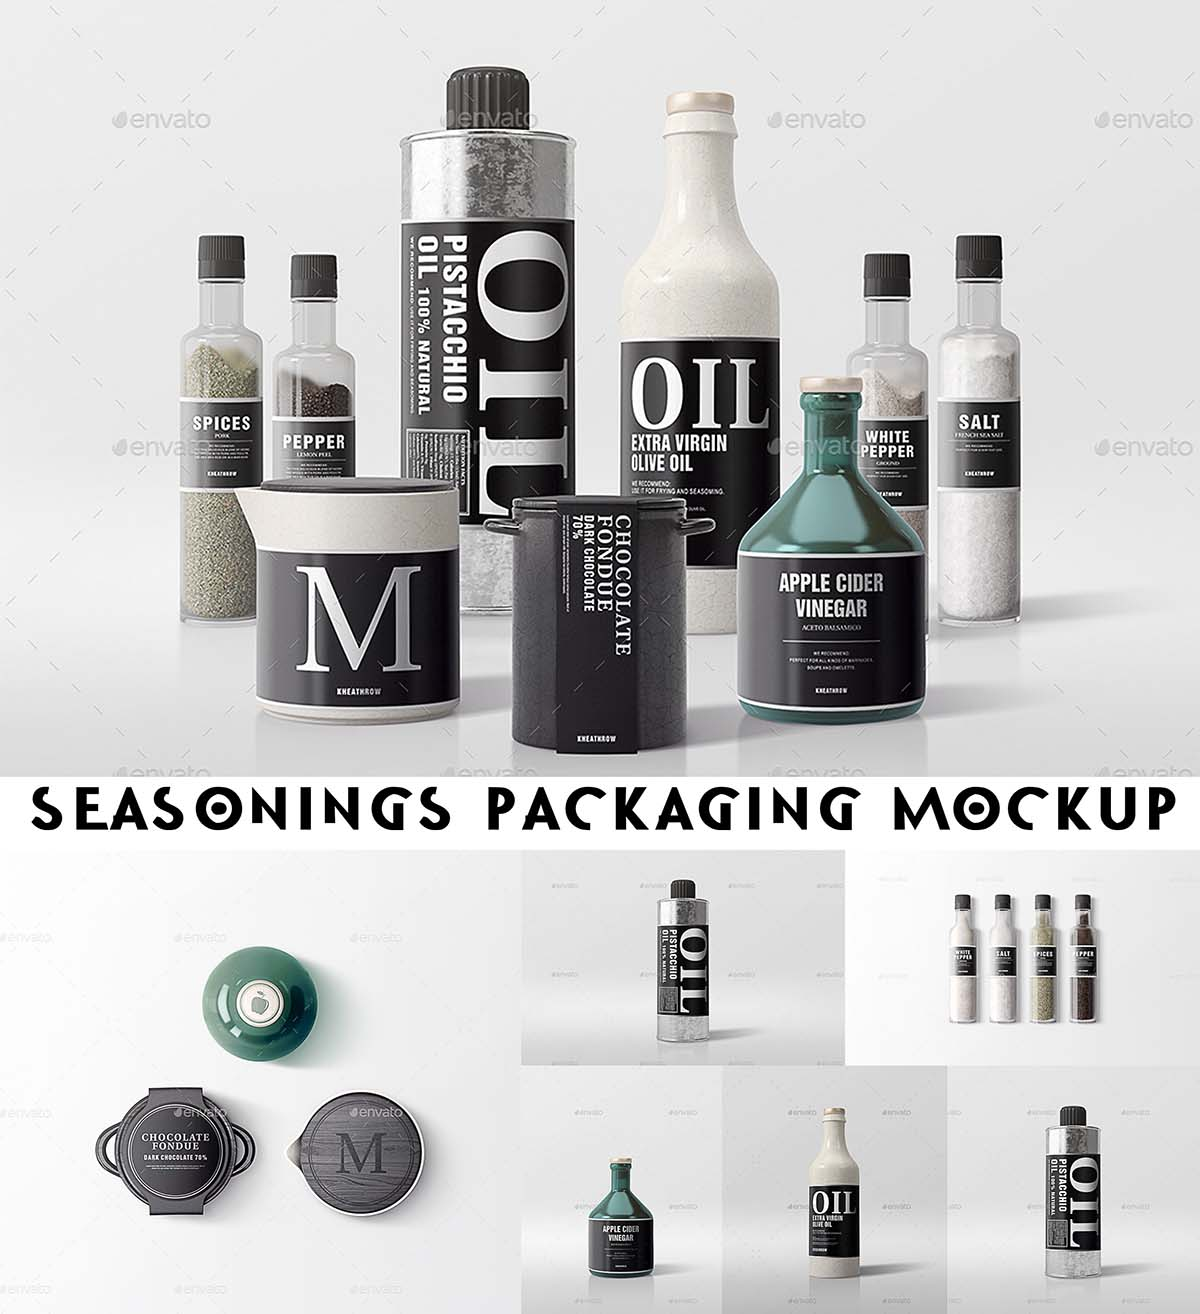 Seasonings branding mockup set